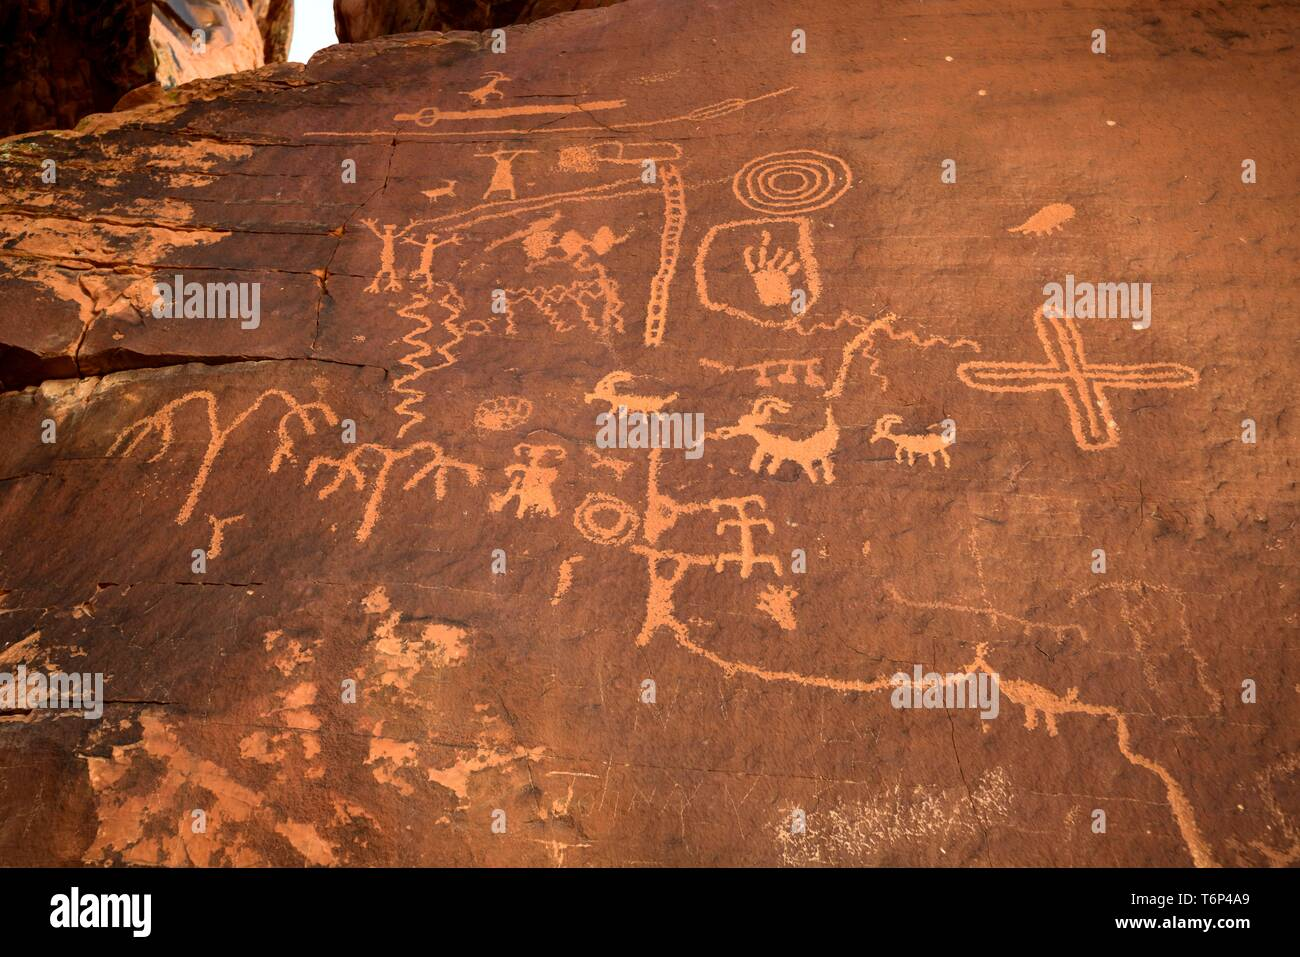 Indian petroglyphs of the Anasazi, Atlatl rock, Valley of Fire State Park, Nevada, USA - Stock Image